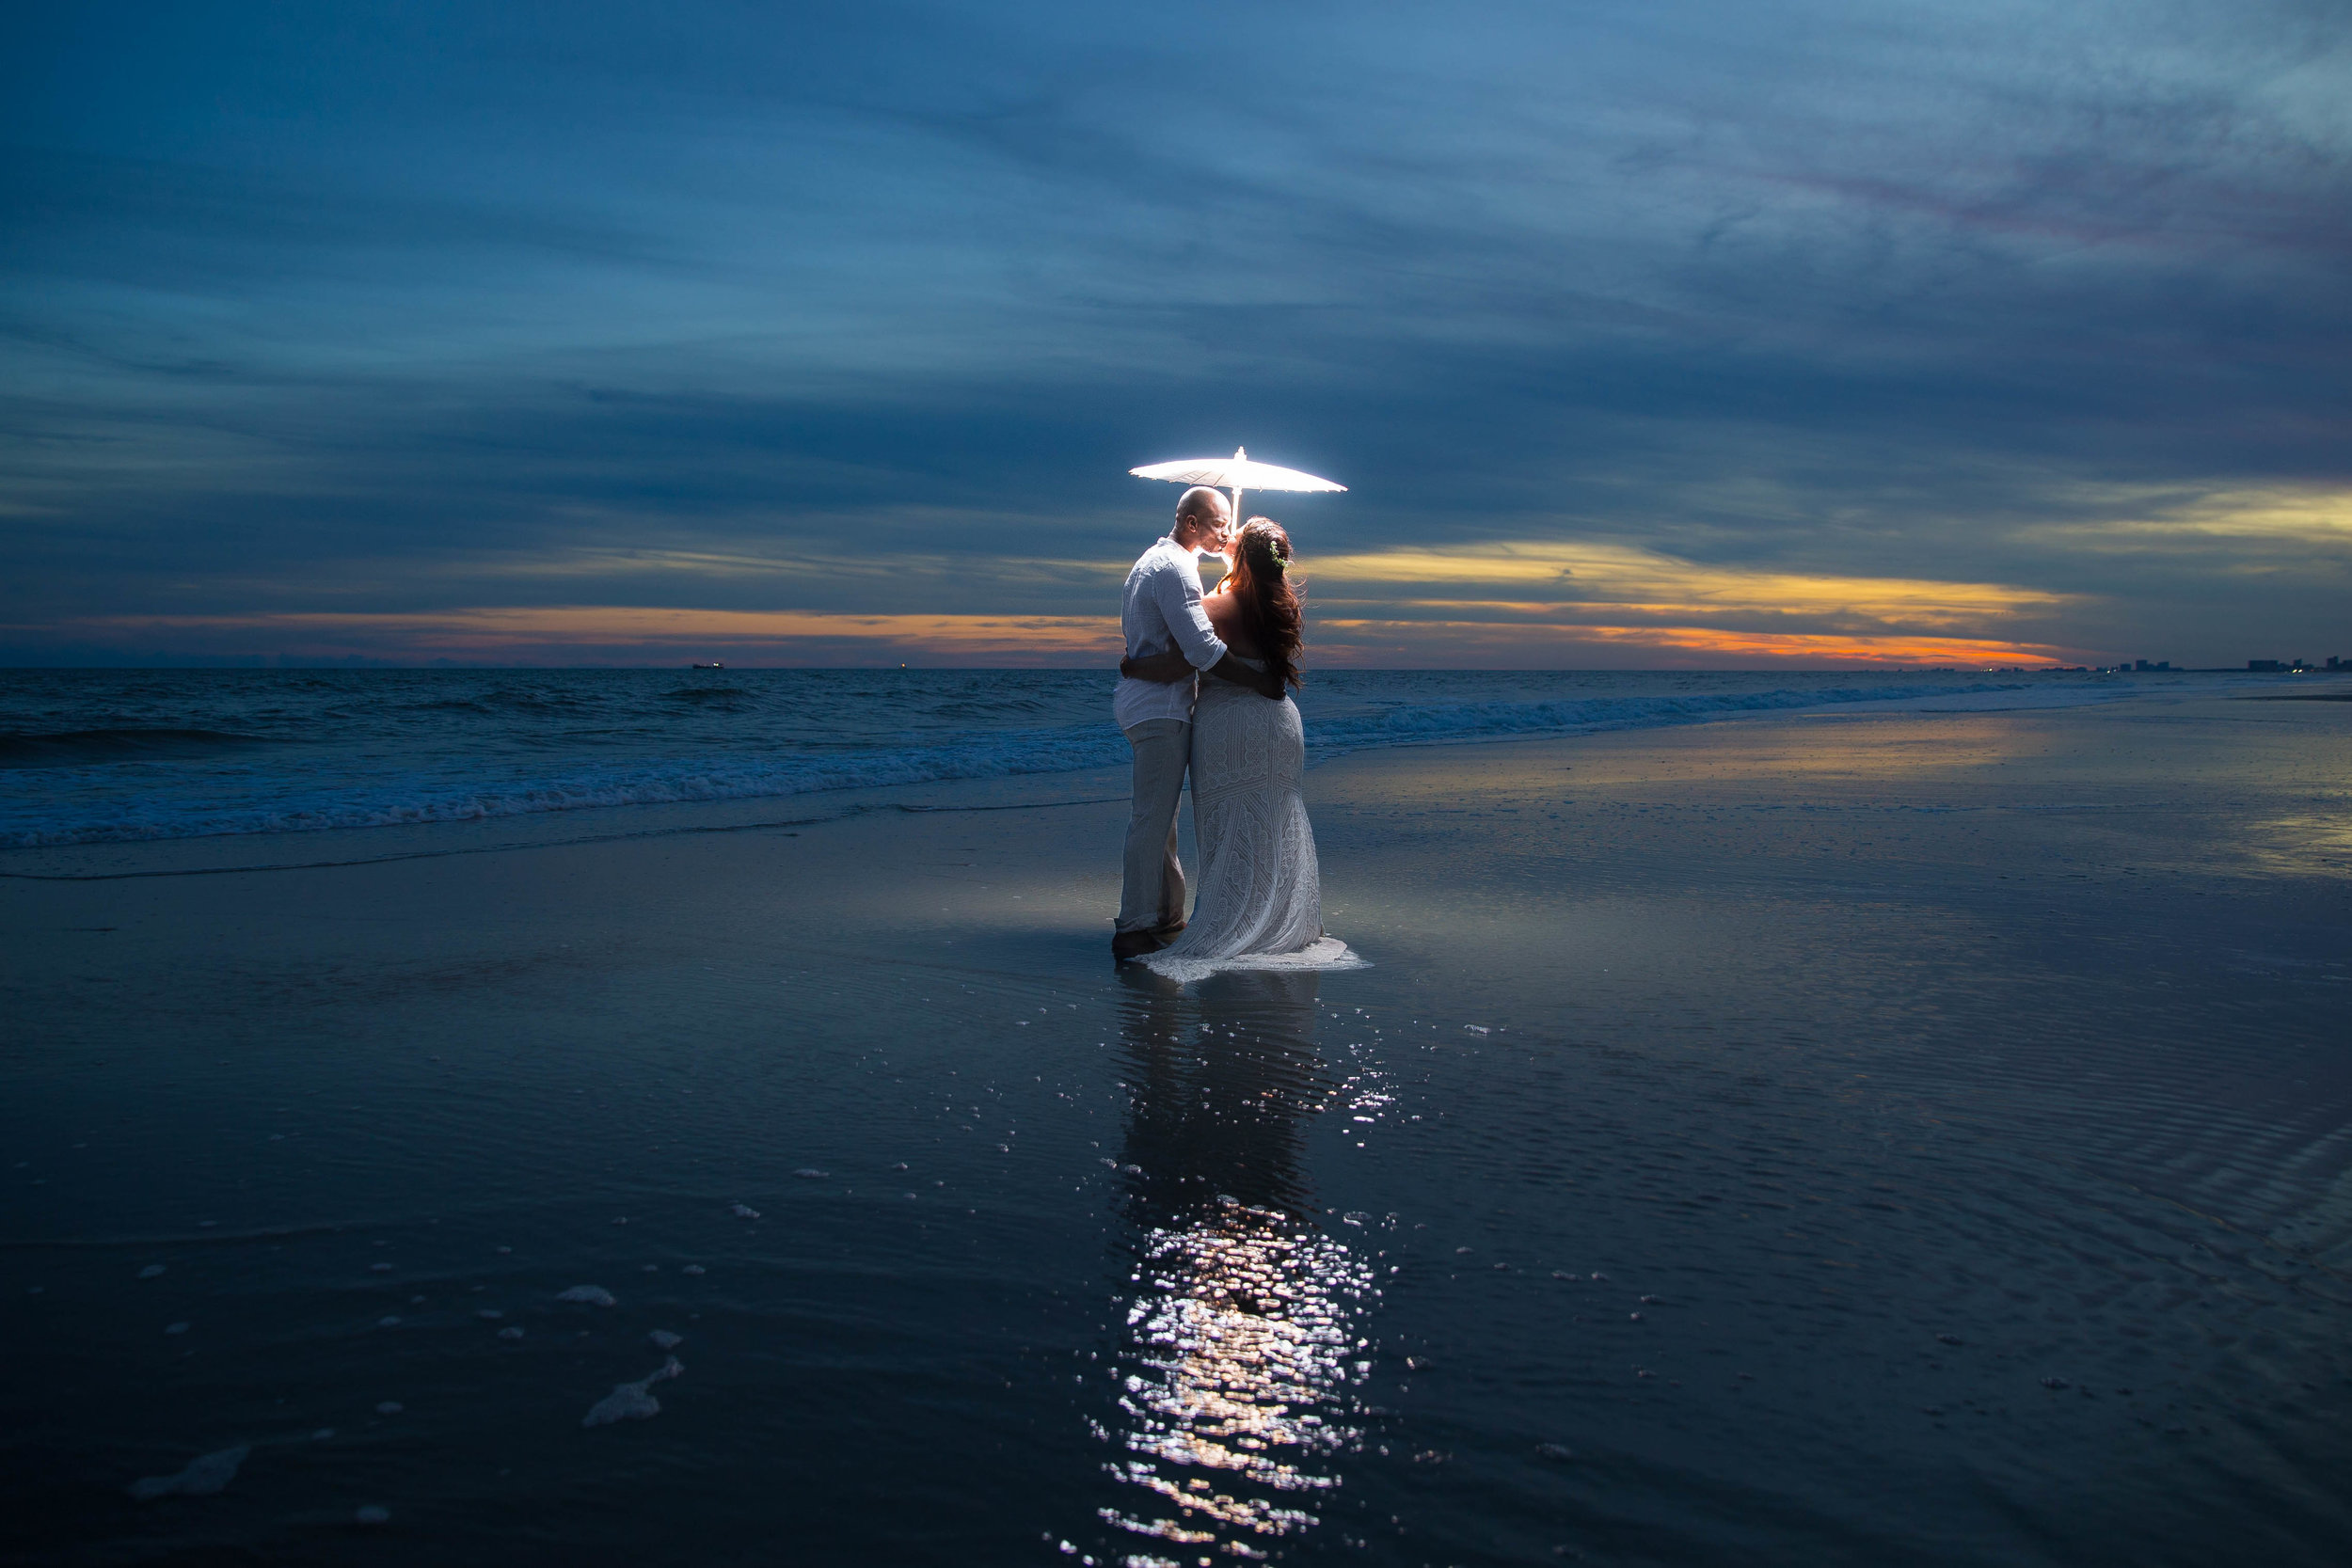 Couple kisses on a beach during sunset with an illuminated umbrella.